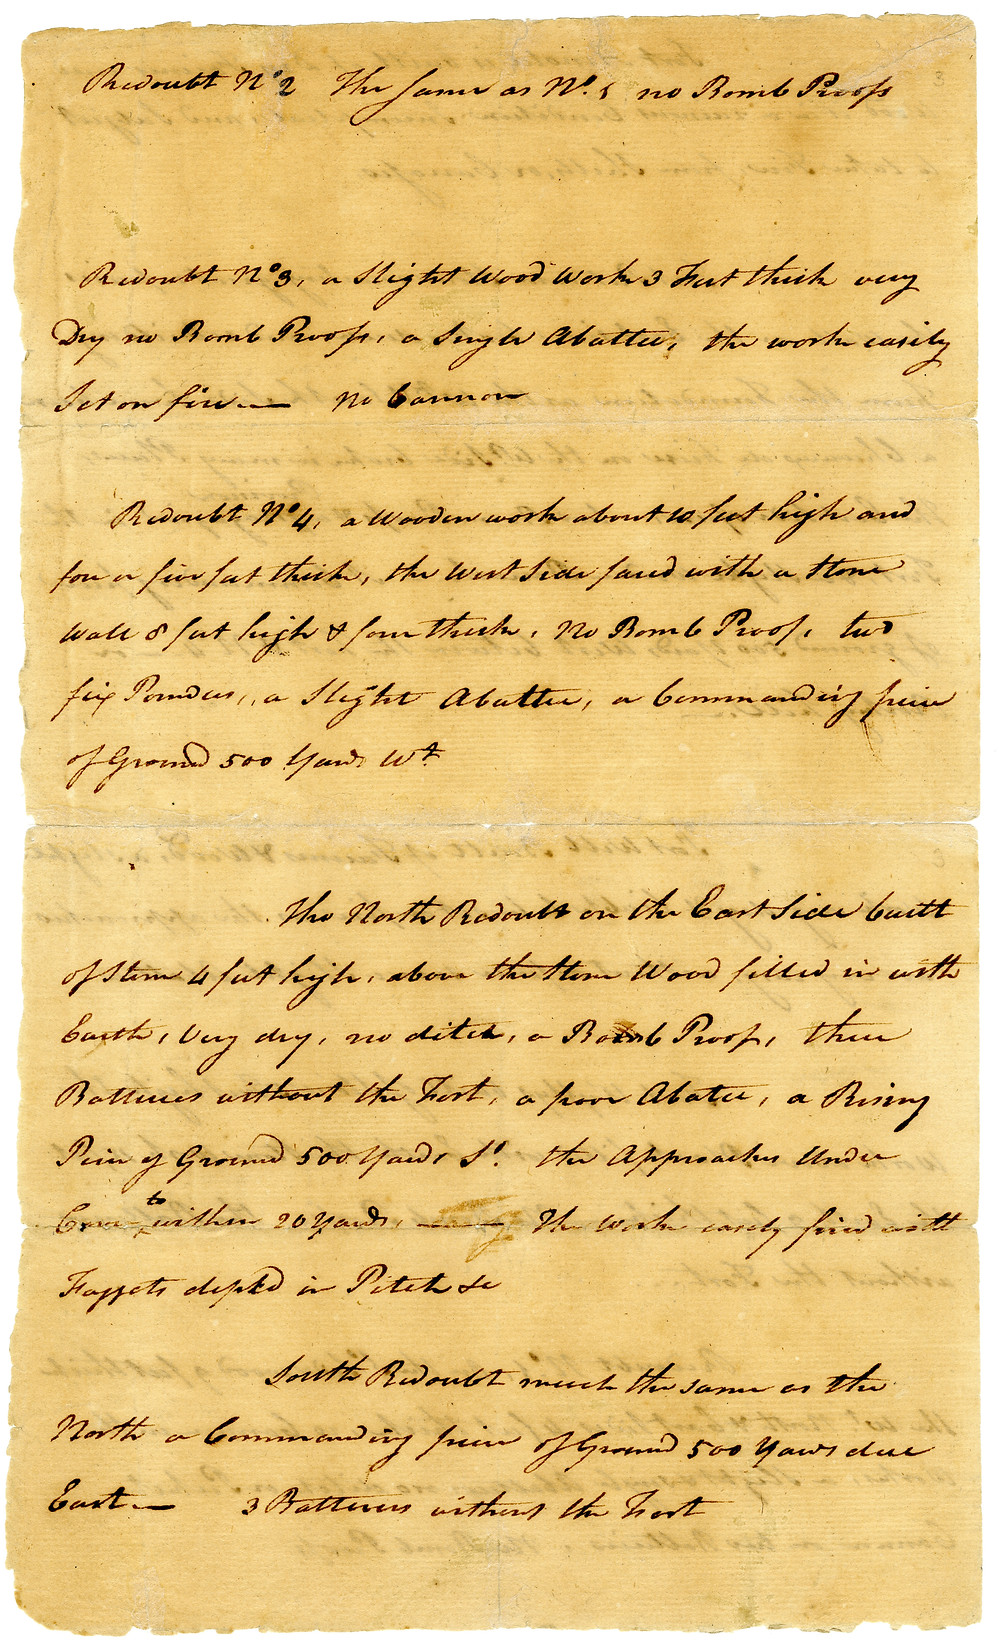 Benedict Arnold's handwritten details of West Point redoubts, including North and South Redoubts. [New York State Archives]